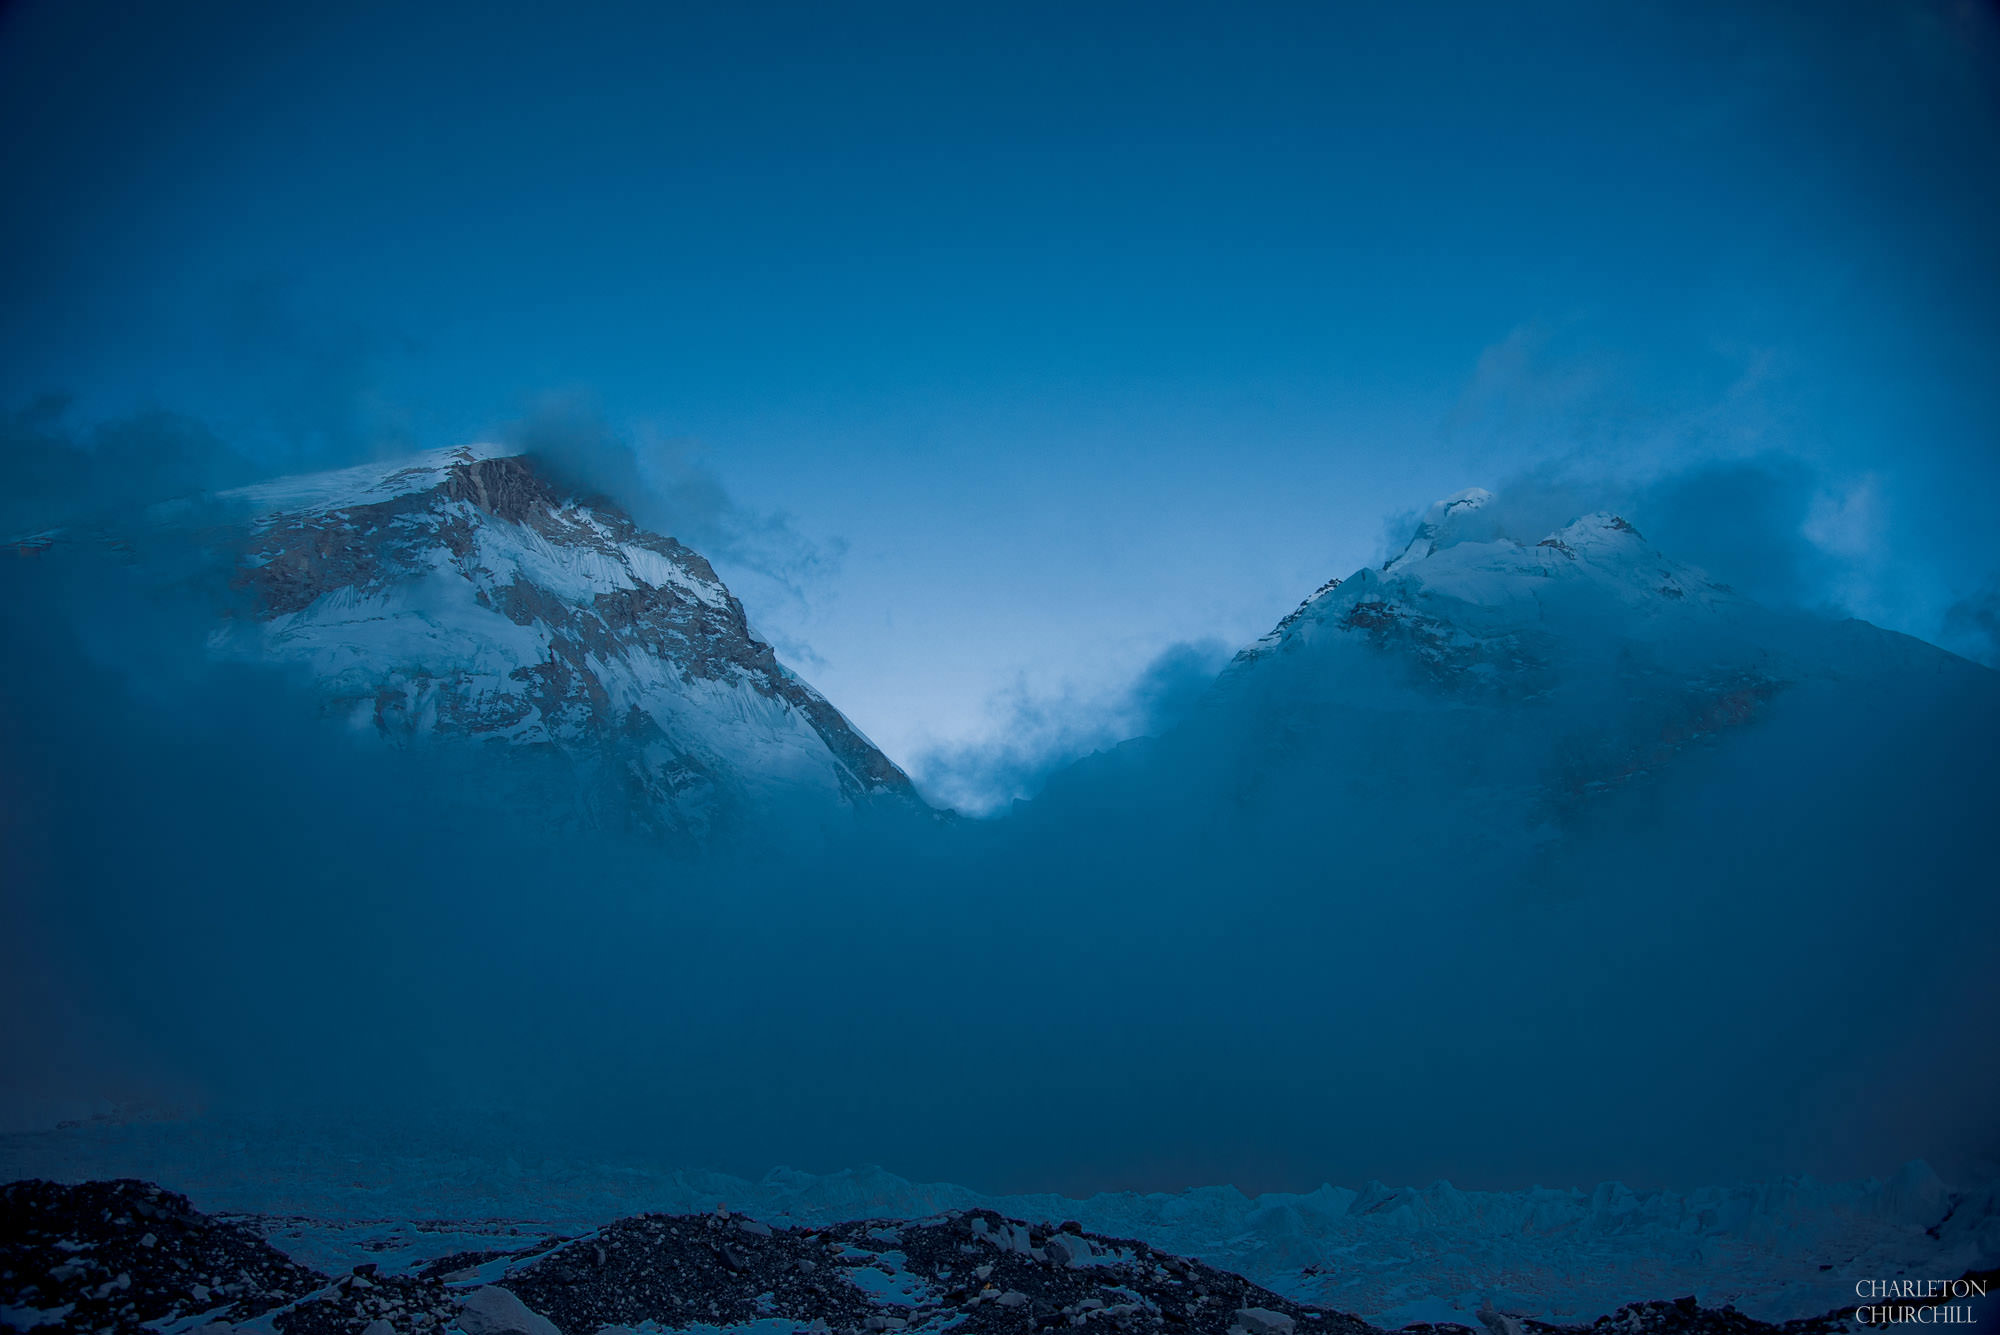 landscape photo of morning at everest base camp and blue sky